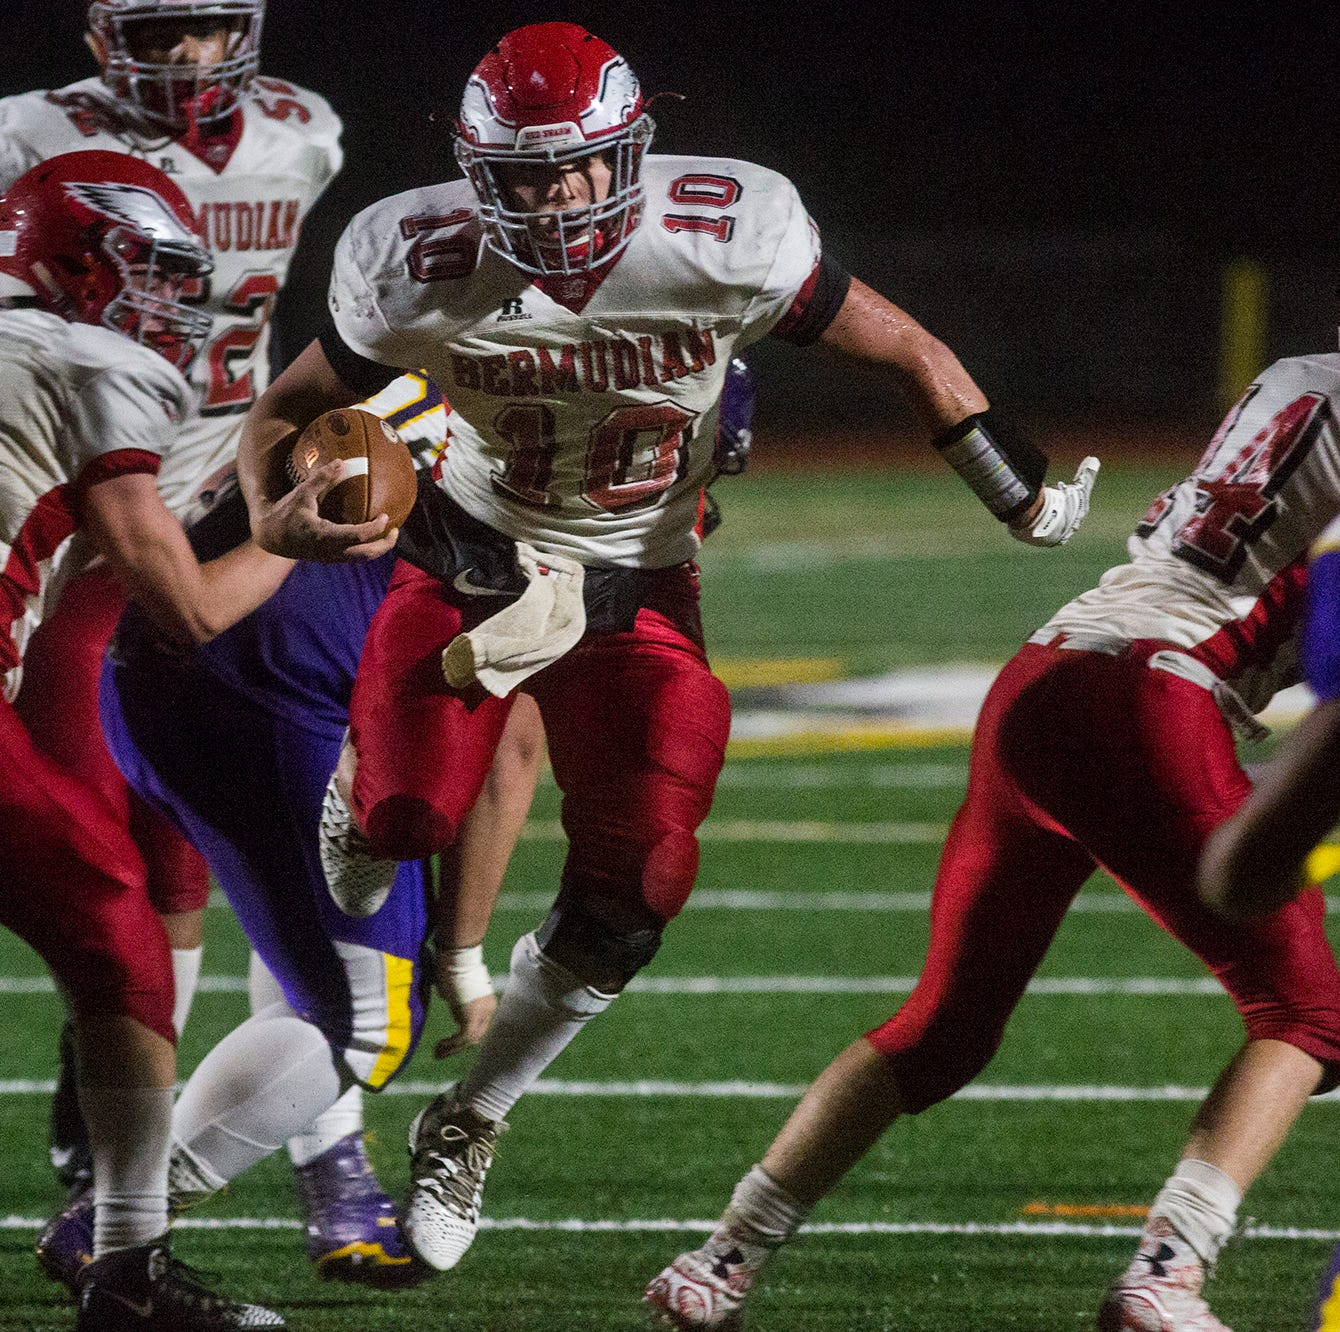 Bermudian Springs shocks No. 1, previously unbeaten Lancaster Catholic to reach title game